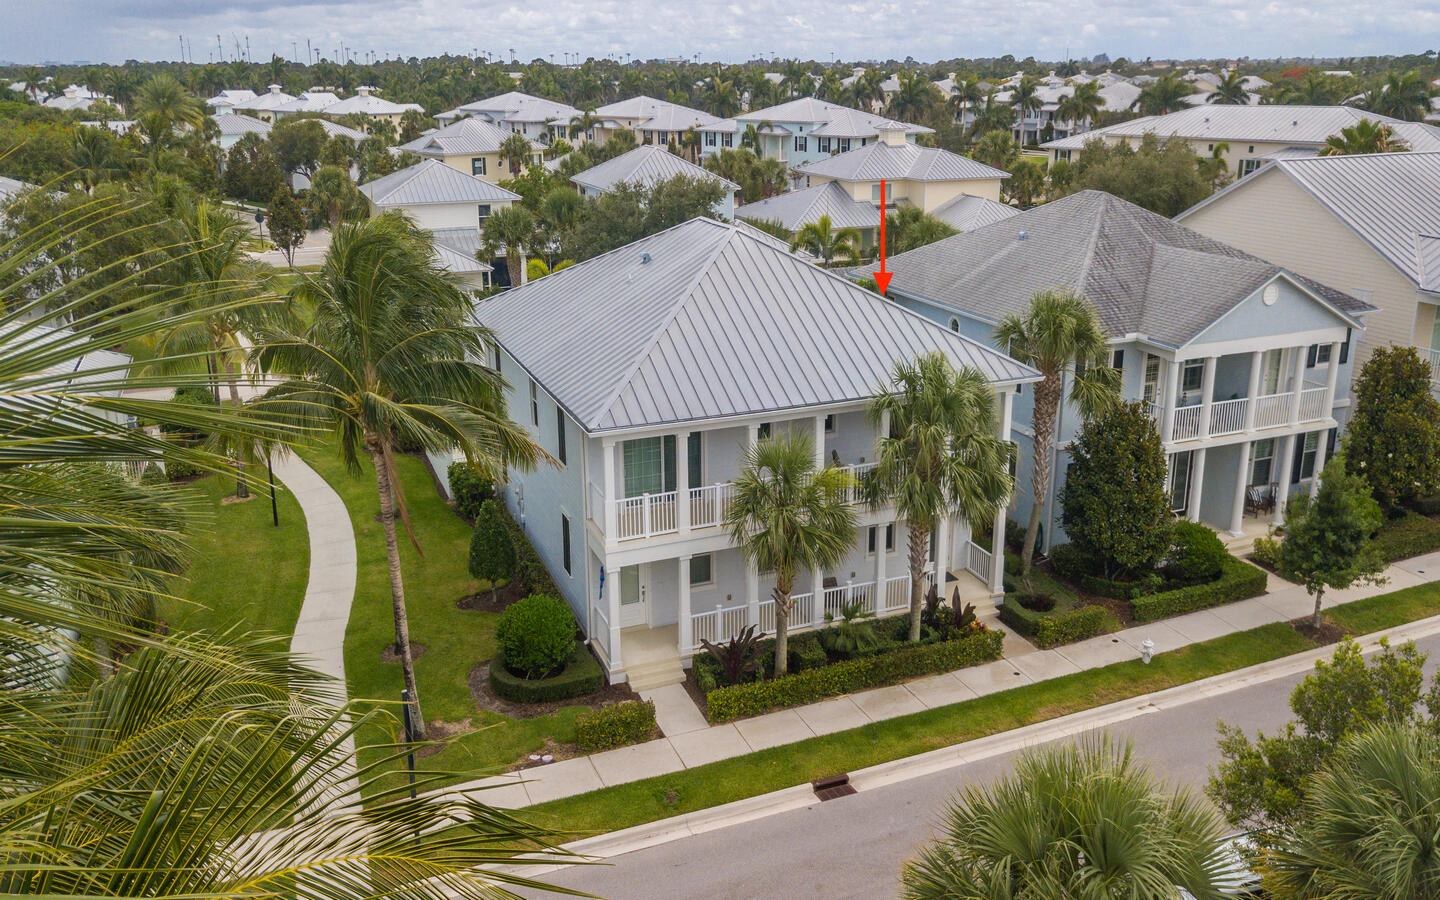 Discover ''Divosta's'' built solid Nautica model townhome in the Mallory Creek neighborhood of Abacoa in Jupiter, FL. Original owner, cared for with pride of ownership and used lightly. Seller took every upgrade offered by Divosta...8 foot interior doors, 42 inch upper cabinets, custom closets,Impact glass windows, lighting, metal roof, granite counters and so much more. Possible turnkey, furniture negotiable. Have Peace of Mind knowing that 1. Divosta quality construction, 2. Privacy...love the neighbors/neighborhood, 3. Simple easy living, 4. Very convenient location!